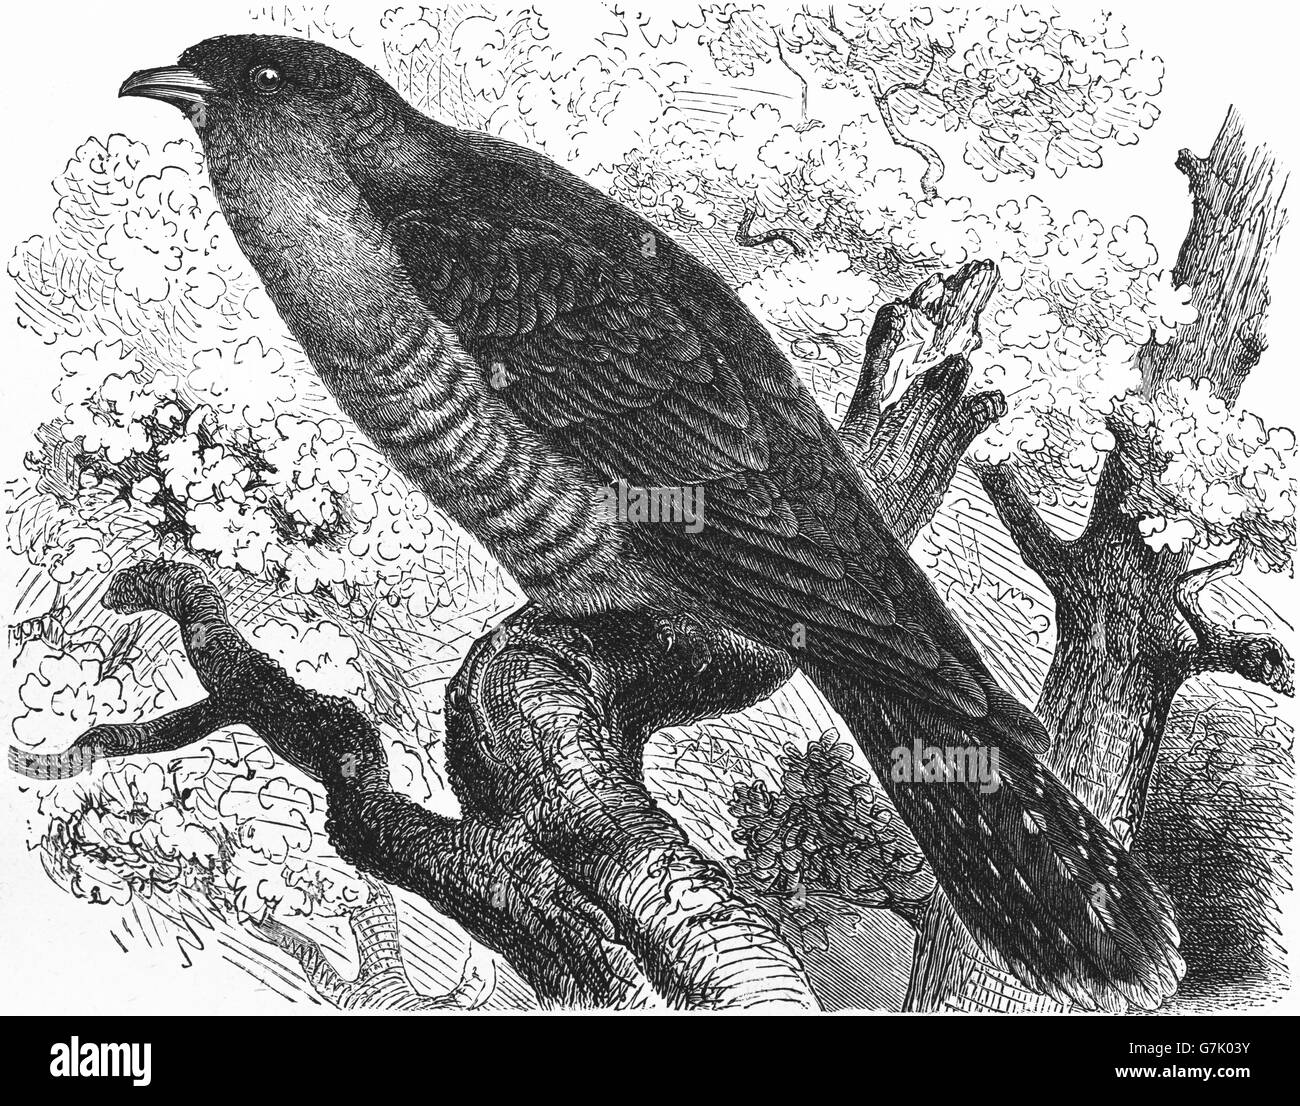 Common cuckoo, Cuculus canorus, illustration from book dated 1904 - Stock Image